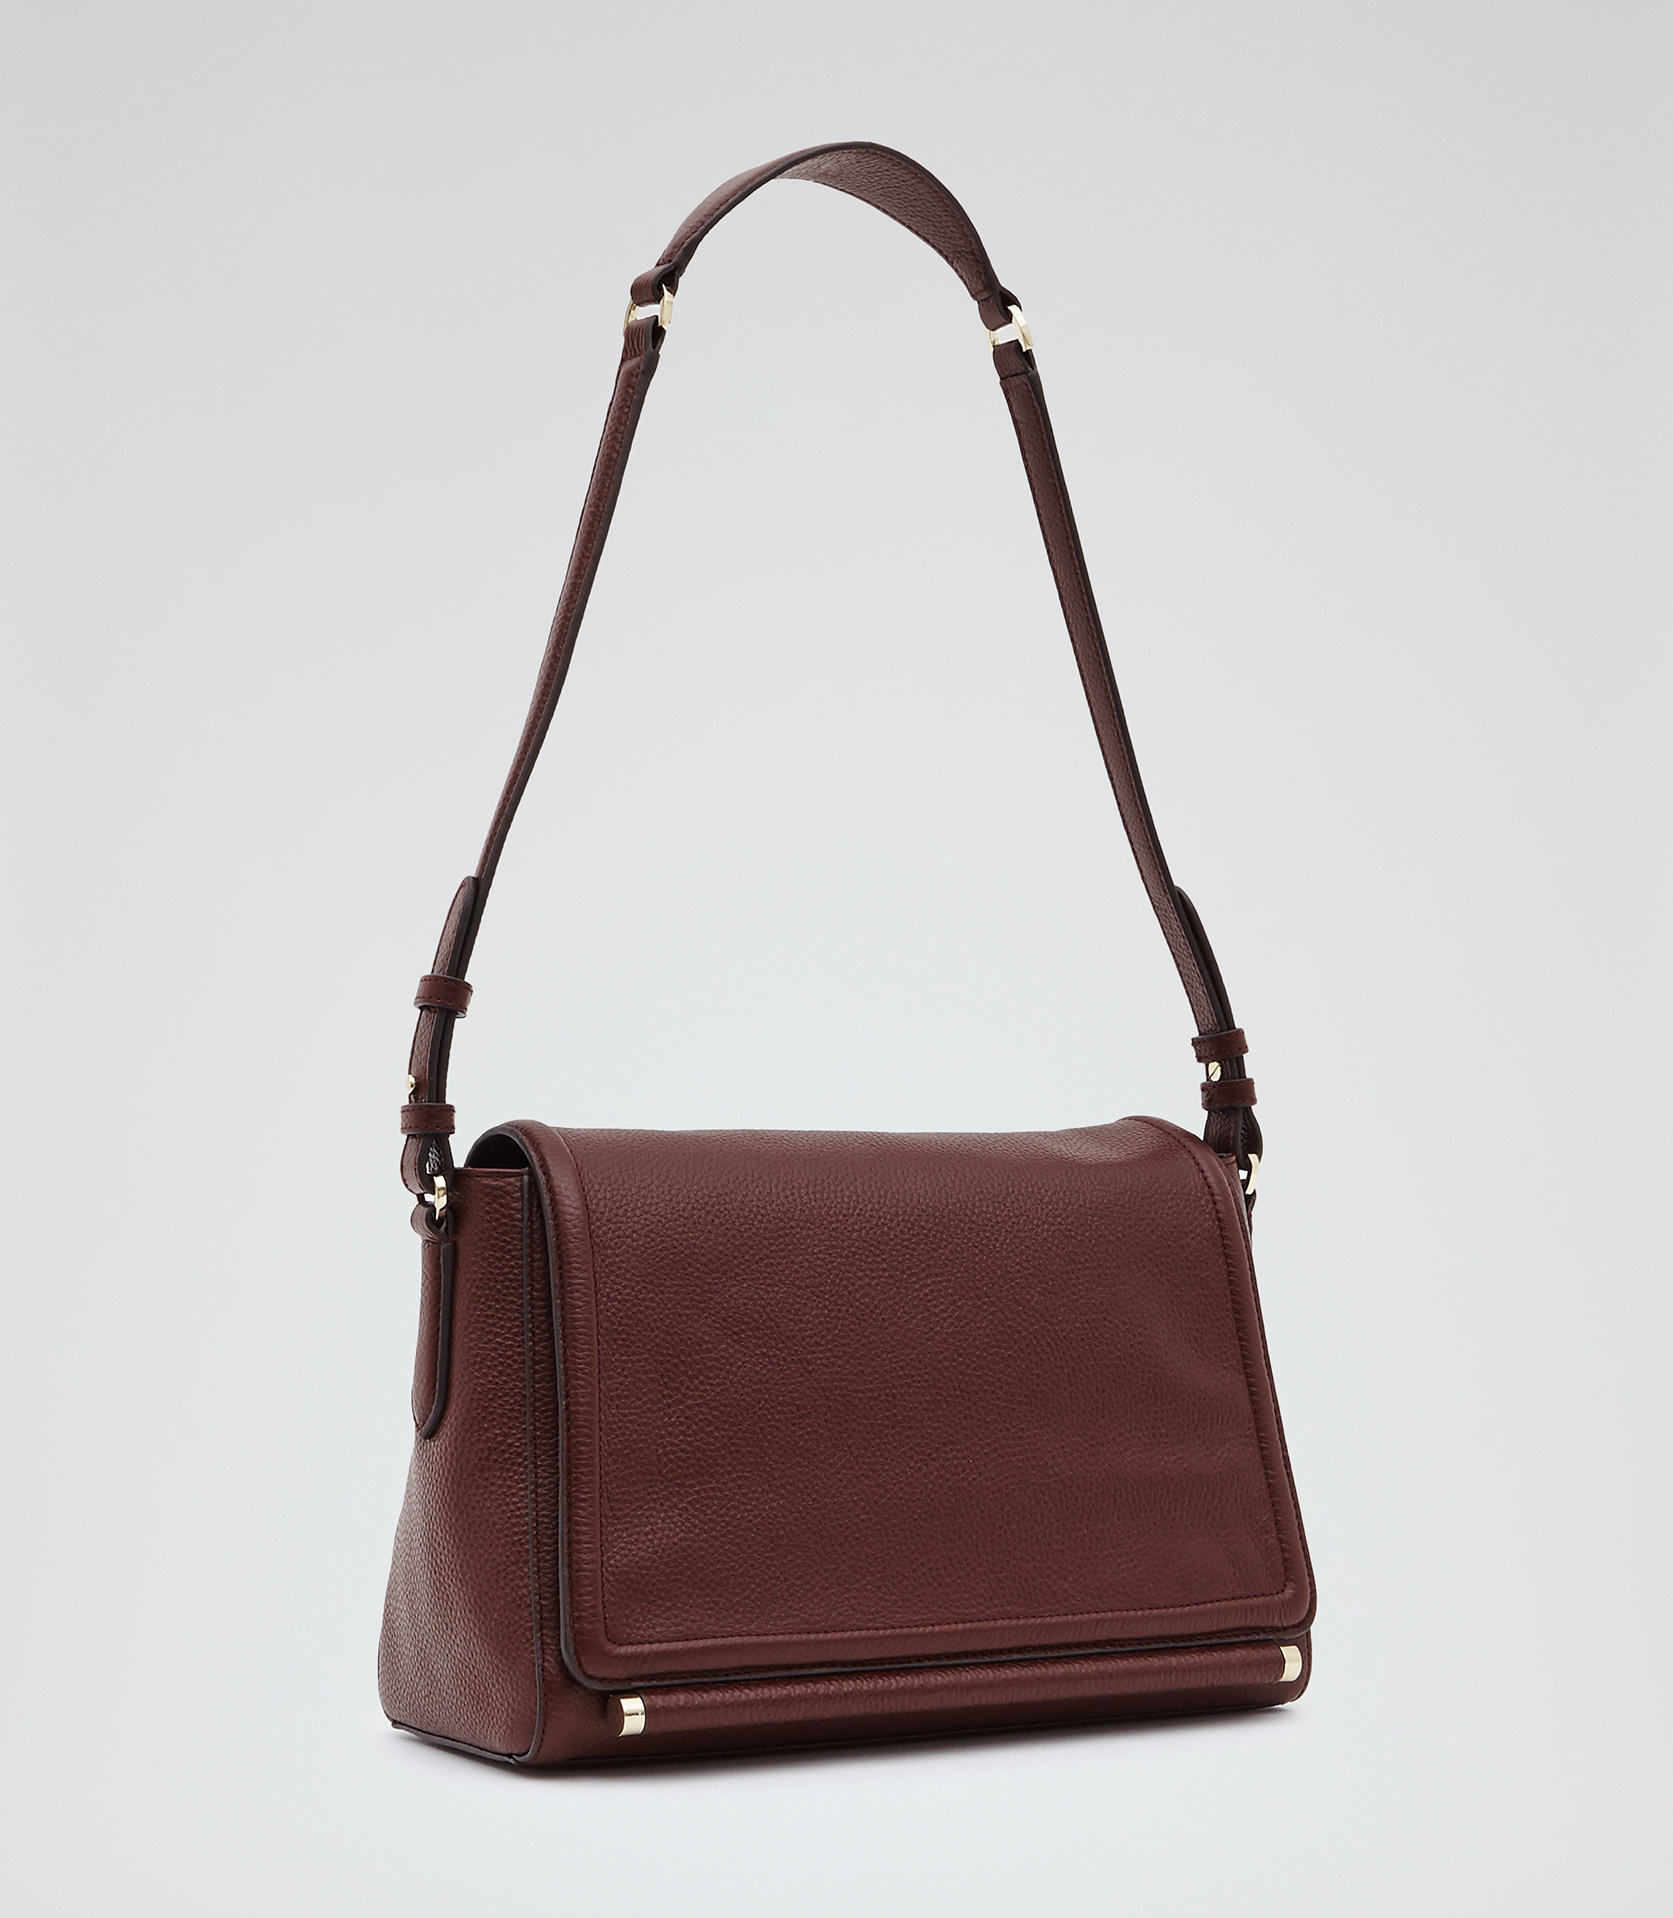 Reiss Sahara Leather Shoulder Bag in Red | Lyst